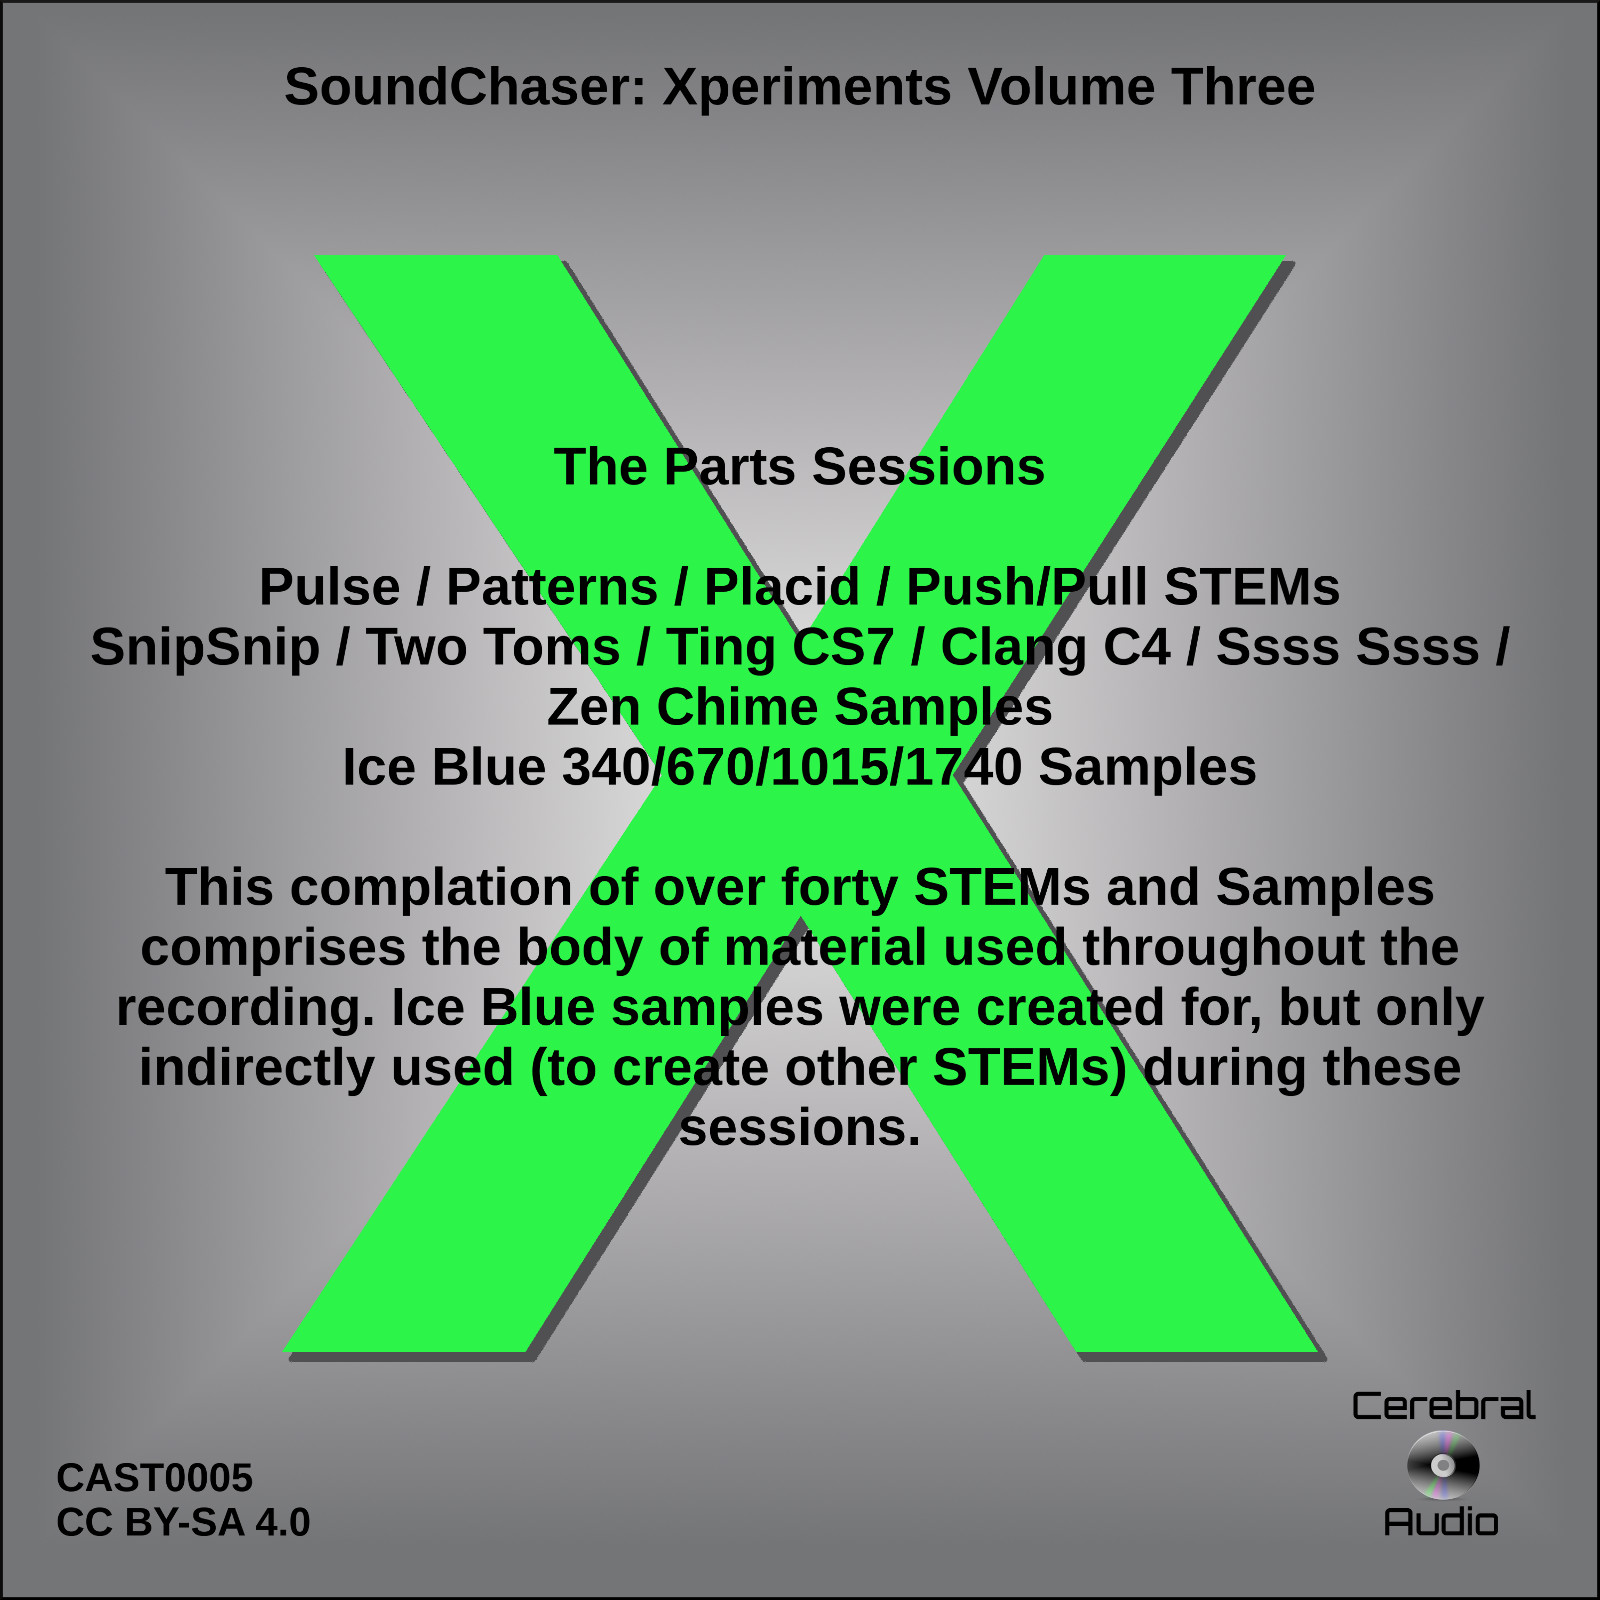 Xperiments Volume Three